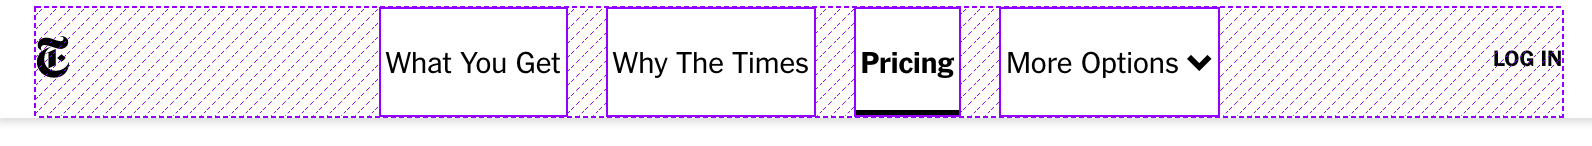 NYTimes header with Flexbox overlay